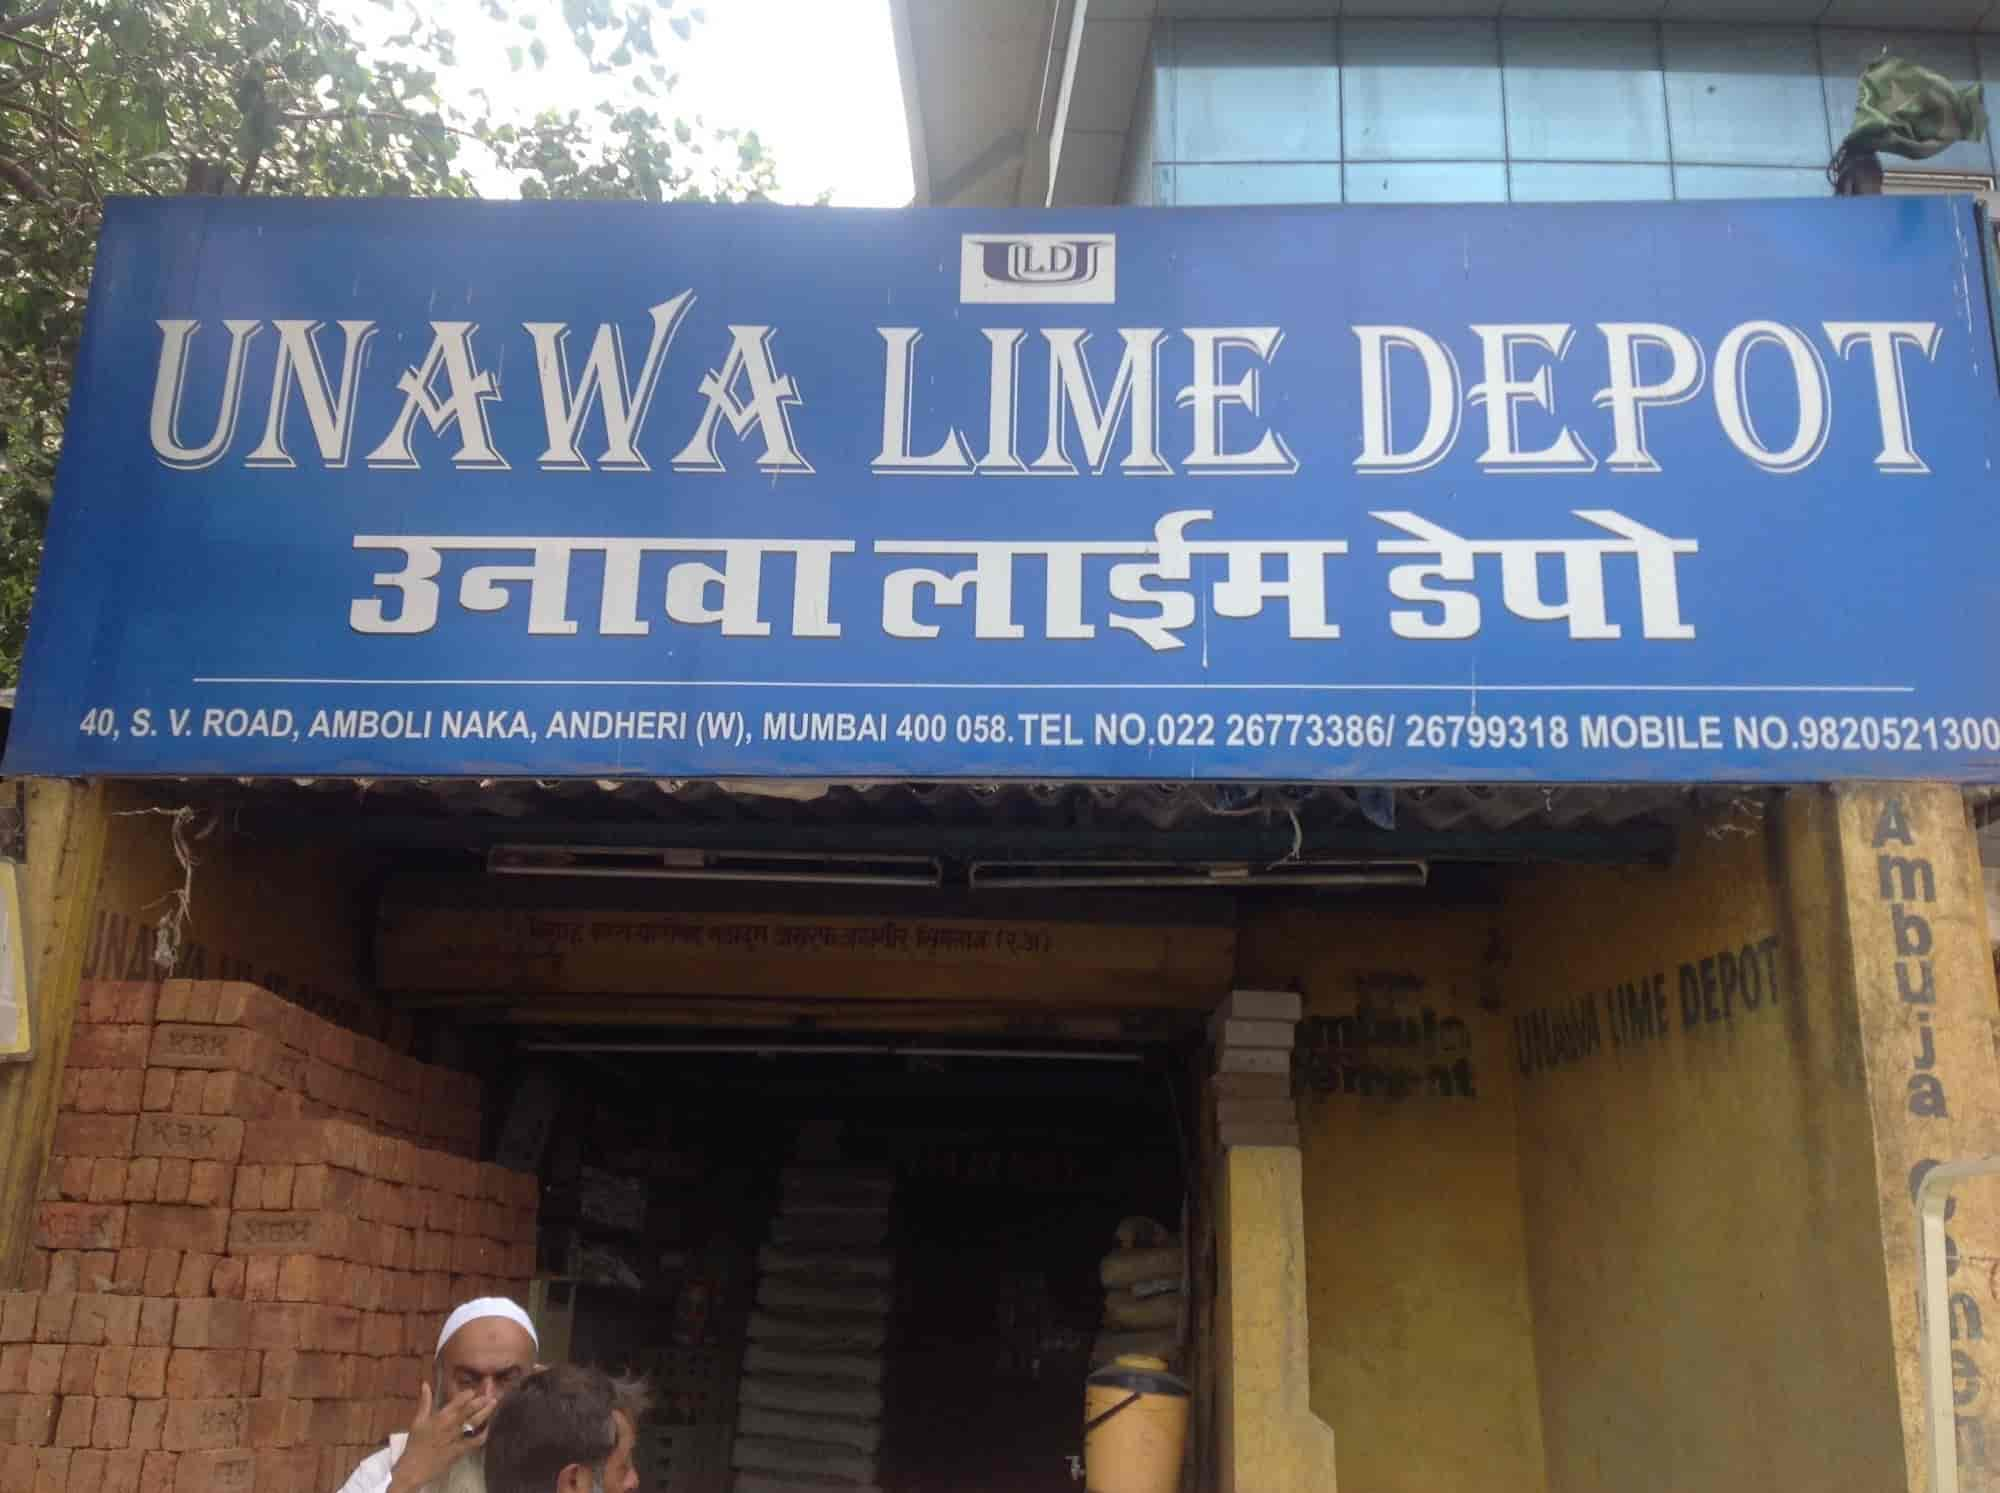 Unawa Lime Depot, Andheri West - Tile Dealers in Mumbai - Justdial